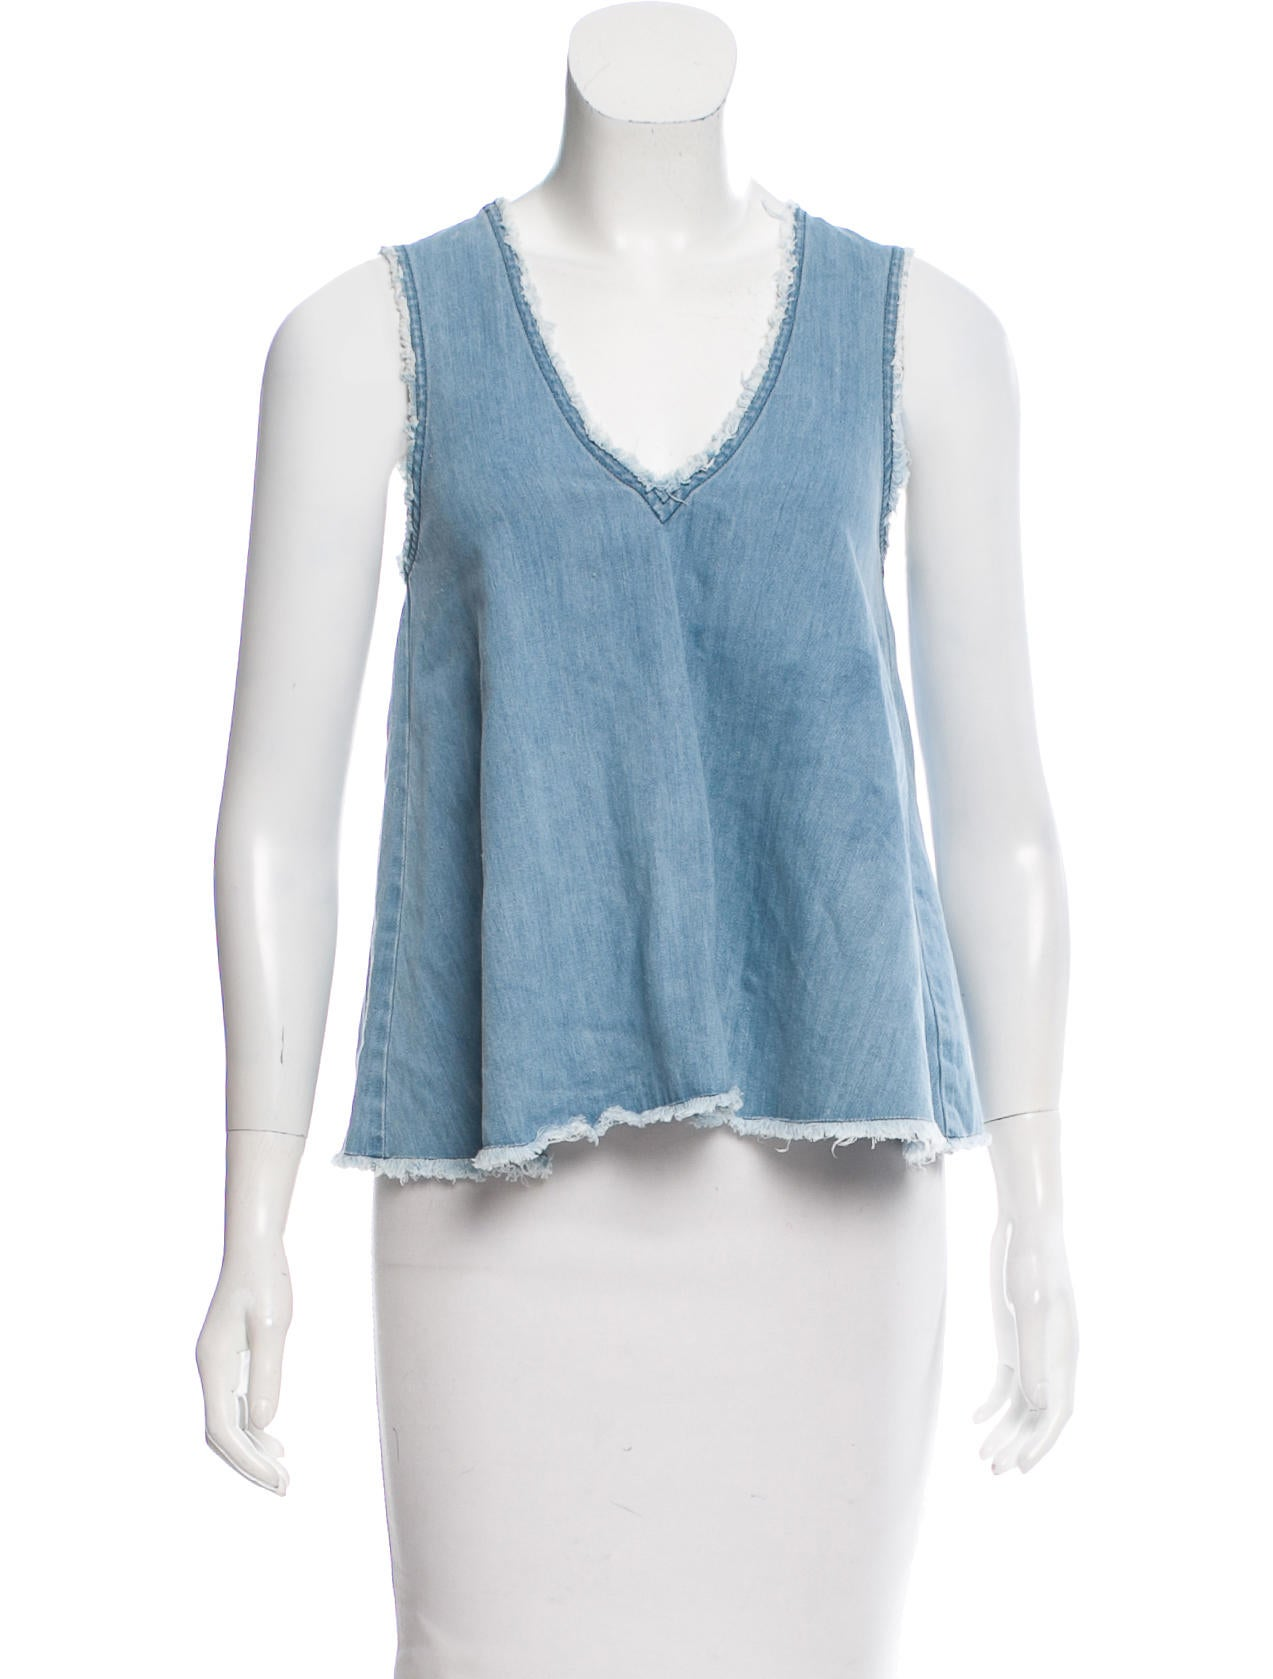 Nicholas sleeveless chambray top clothing w7721043 for Chambray top